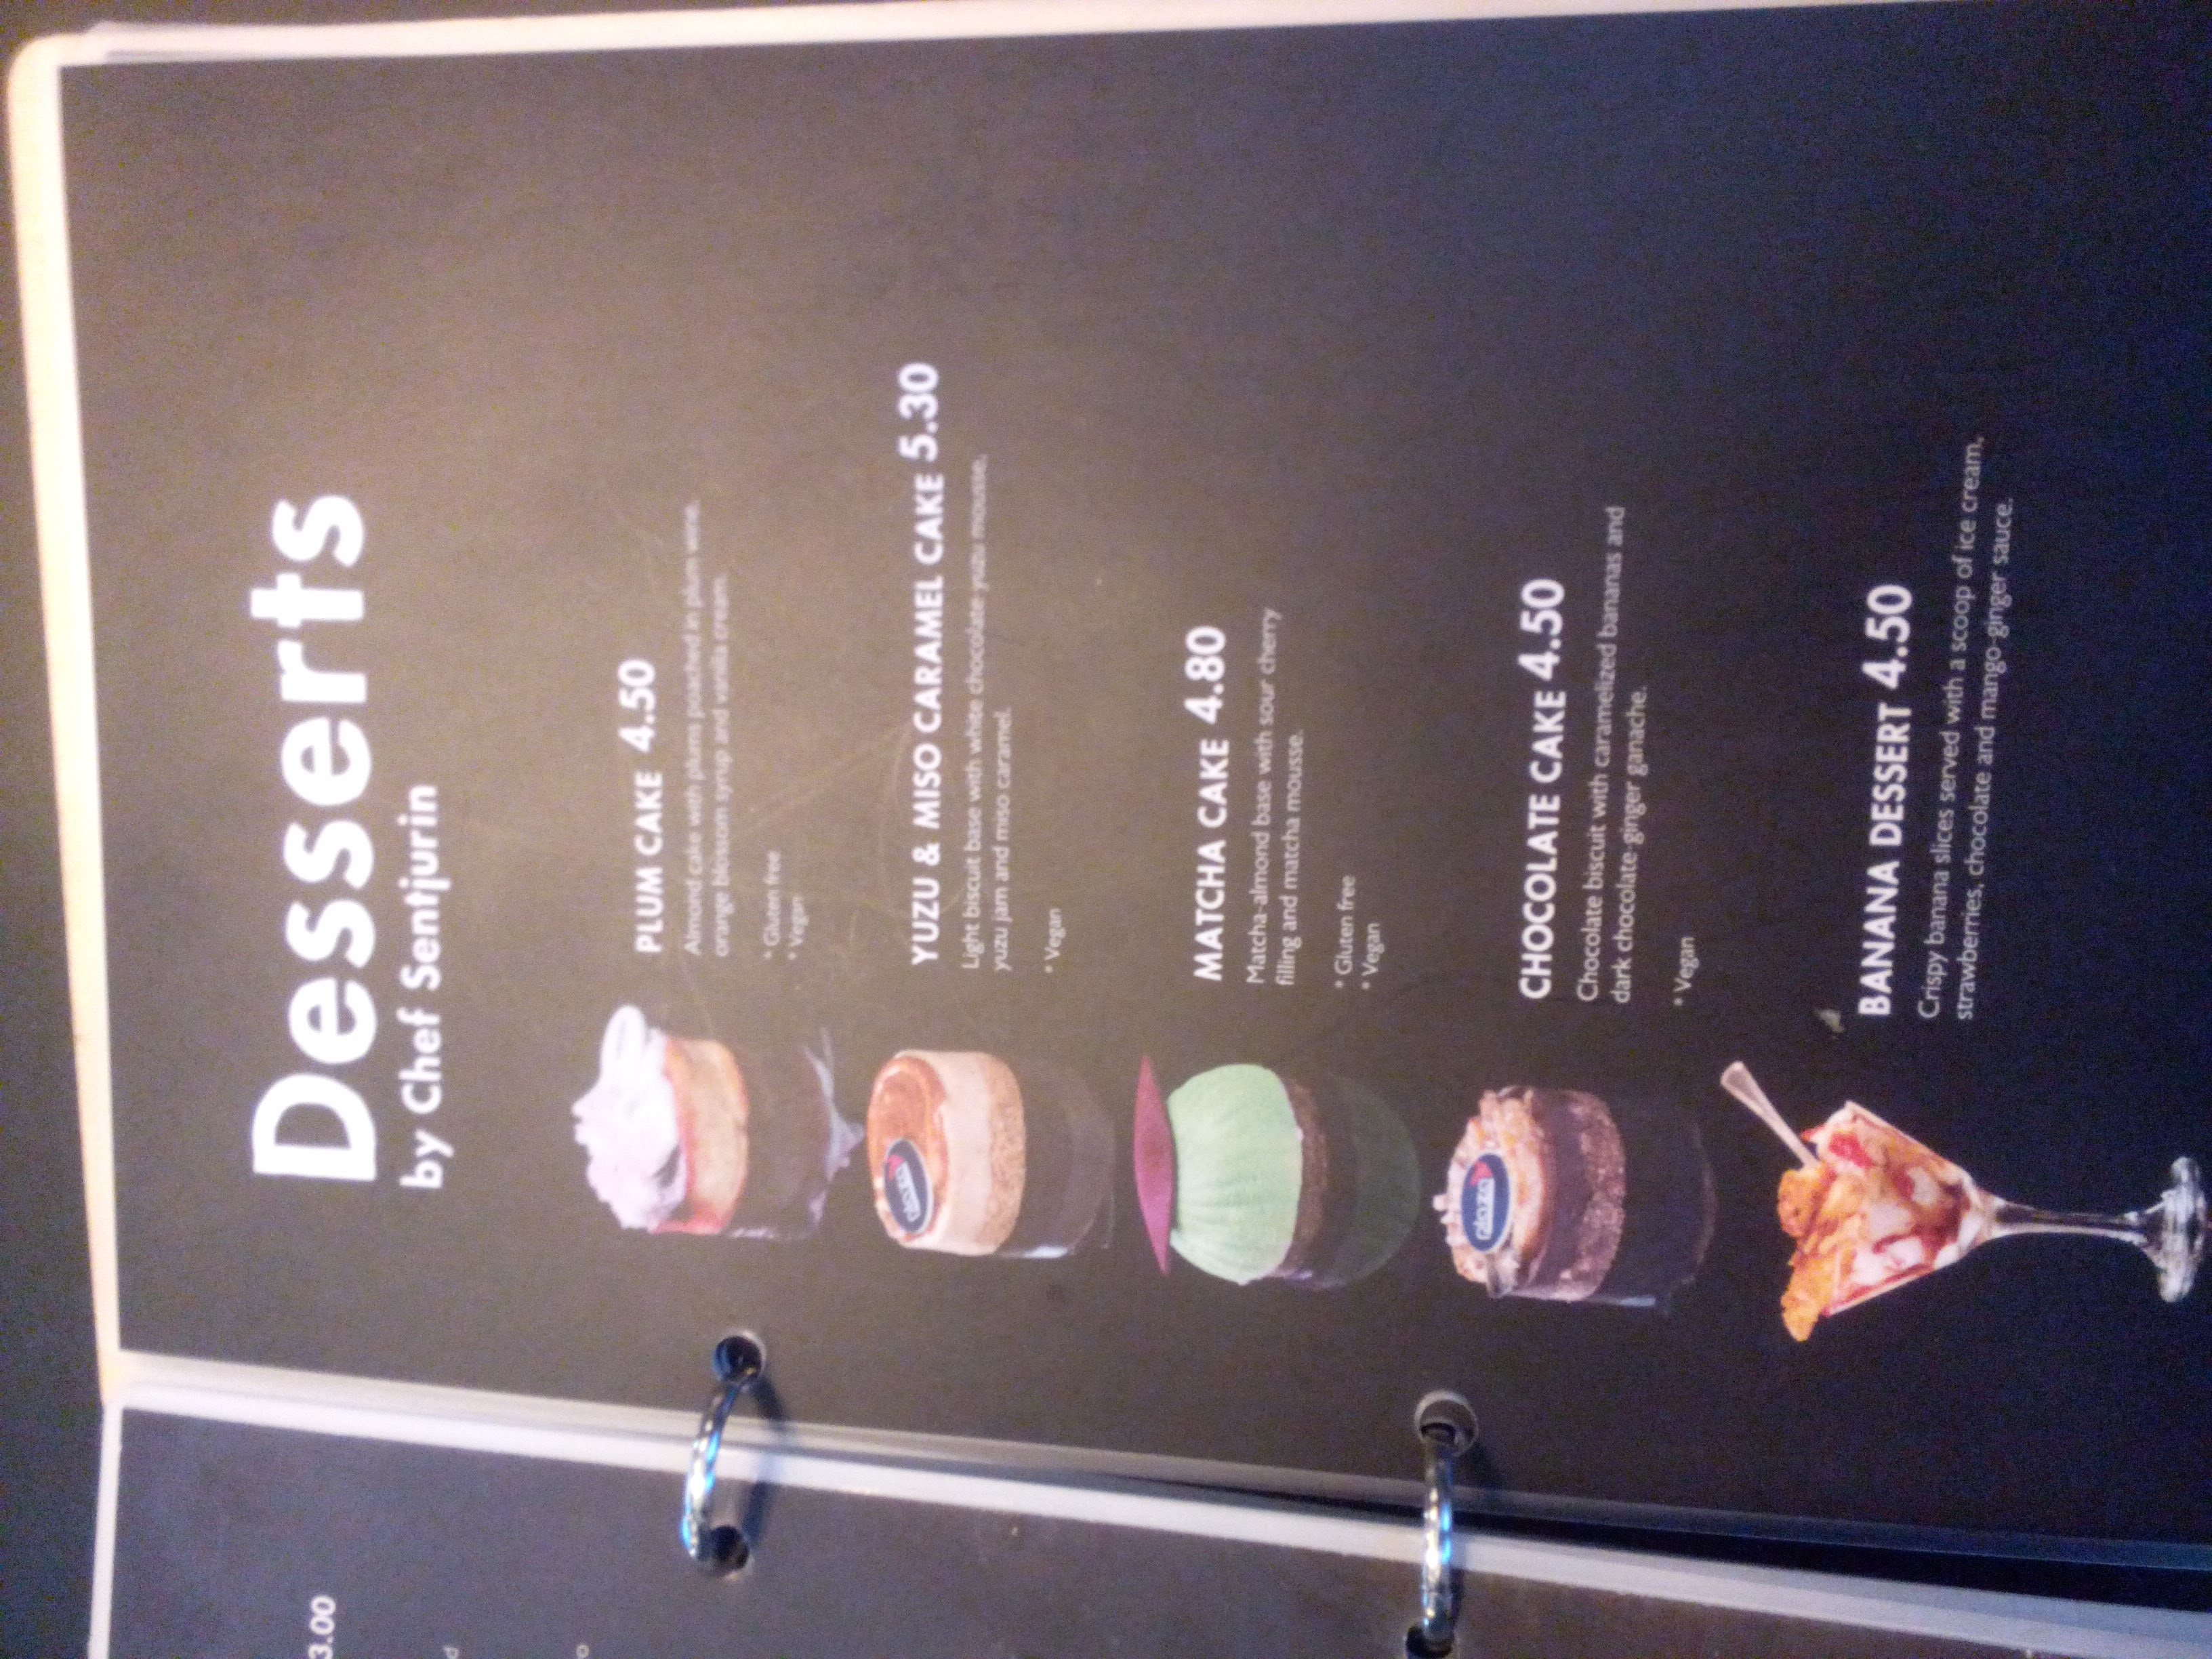 Desserts menu with pictures